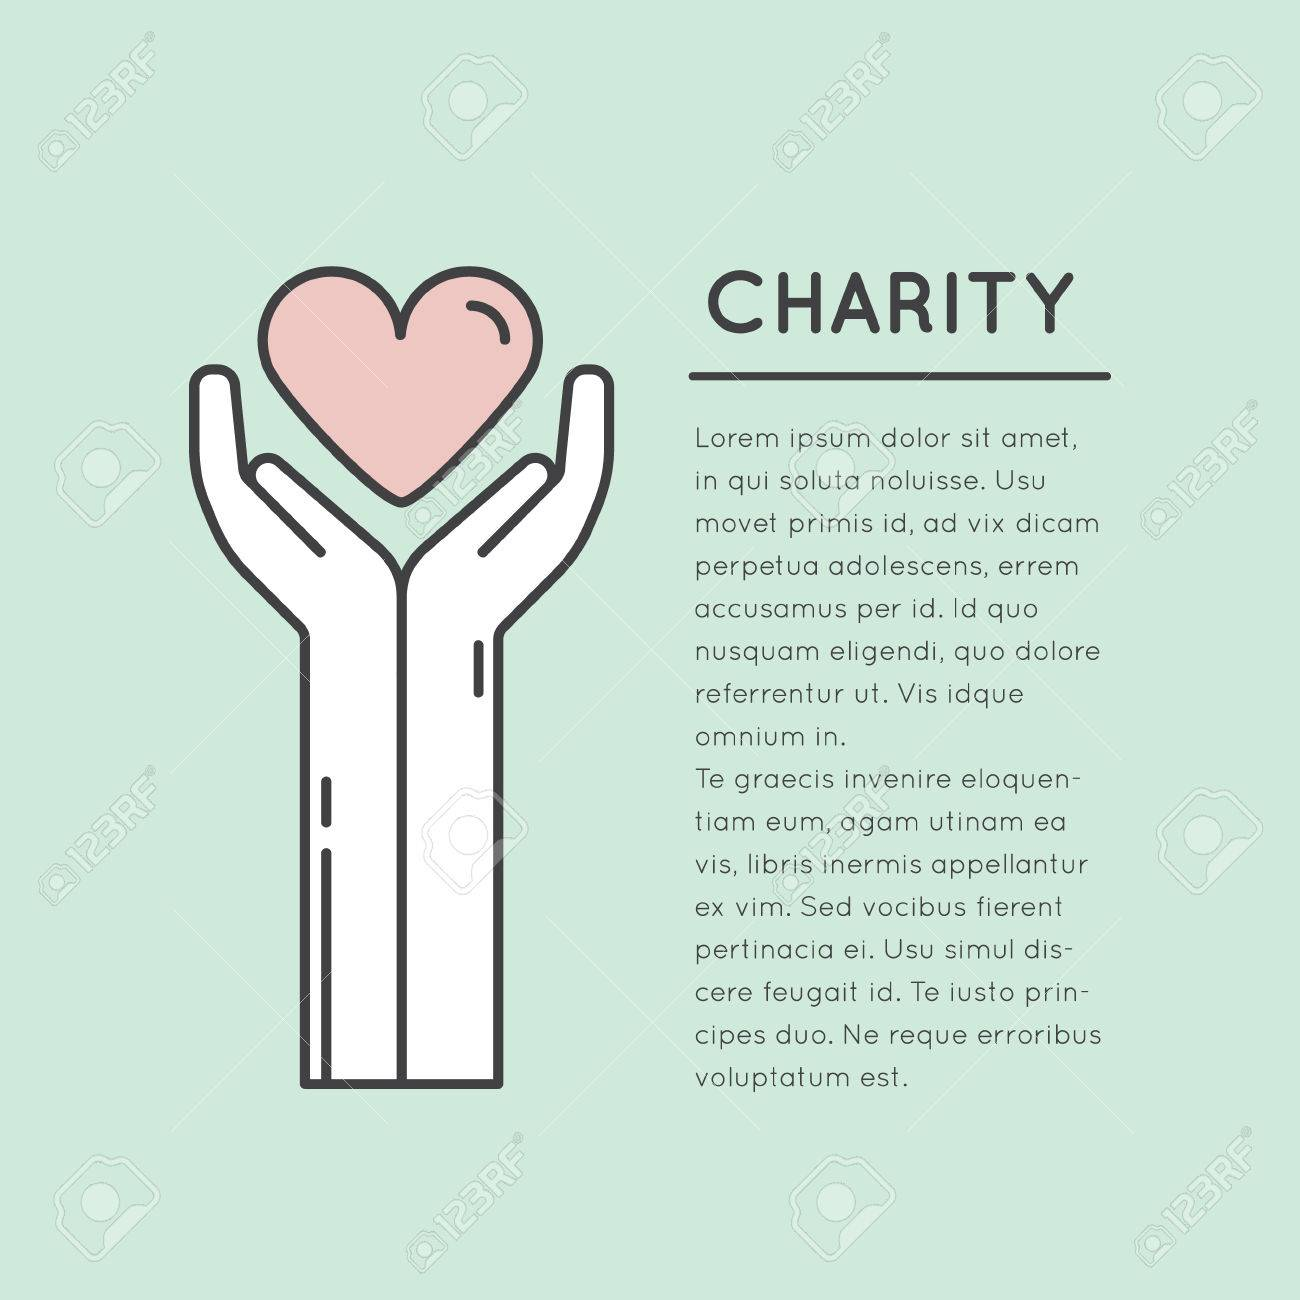 vector icon style illustration card or poster template with charity